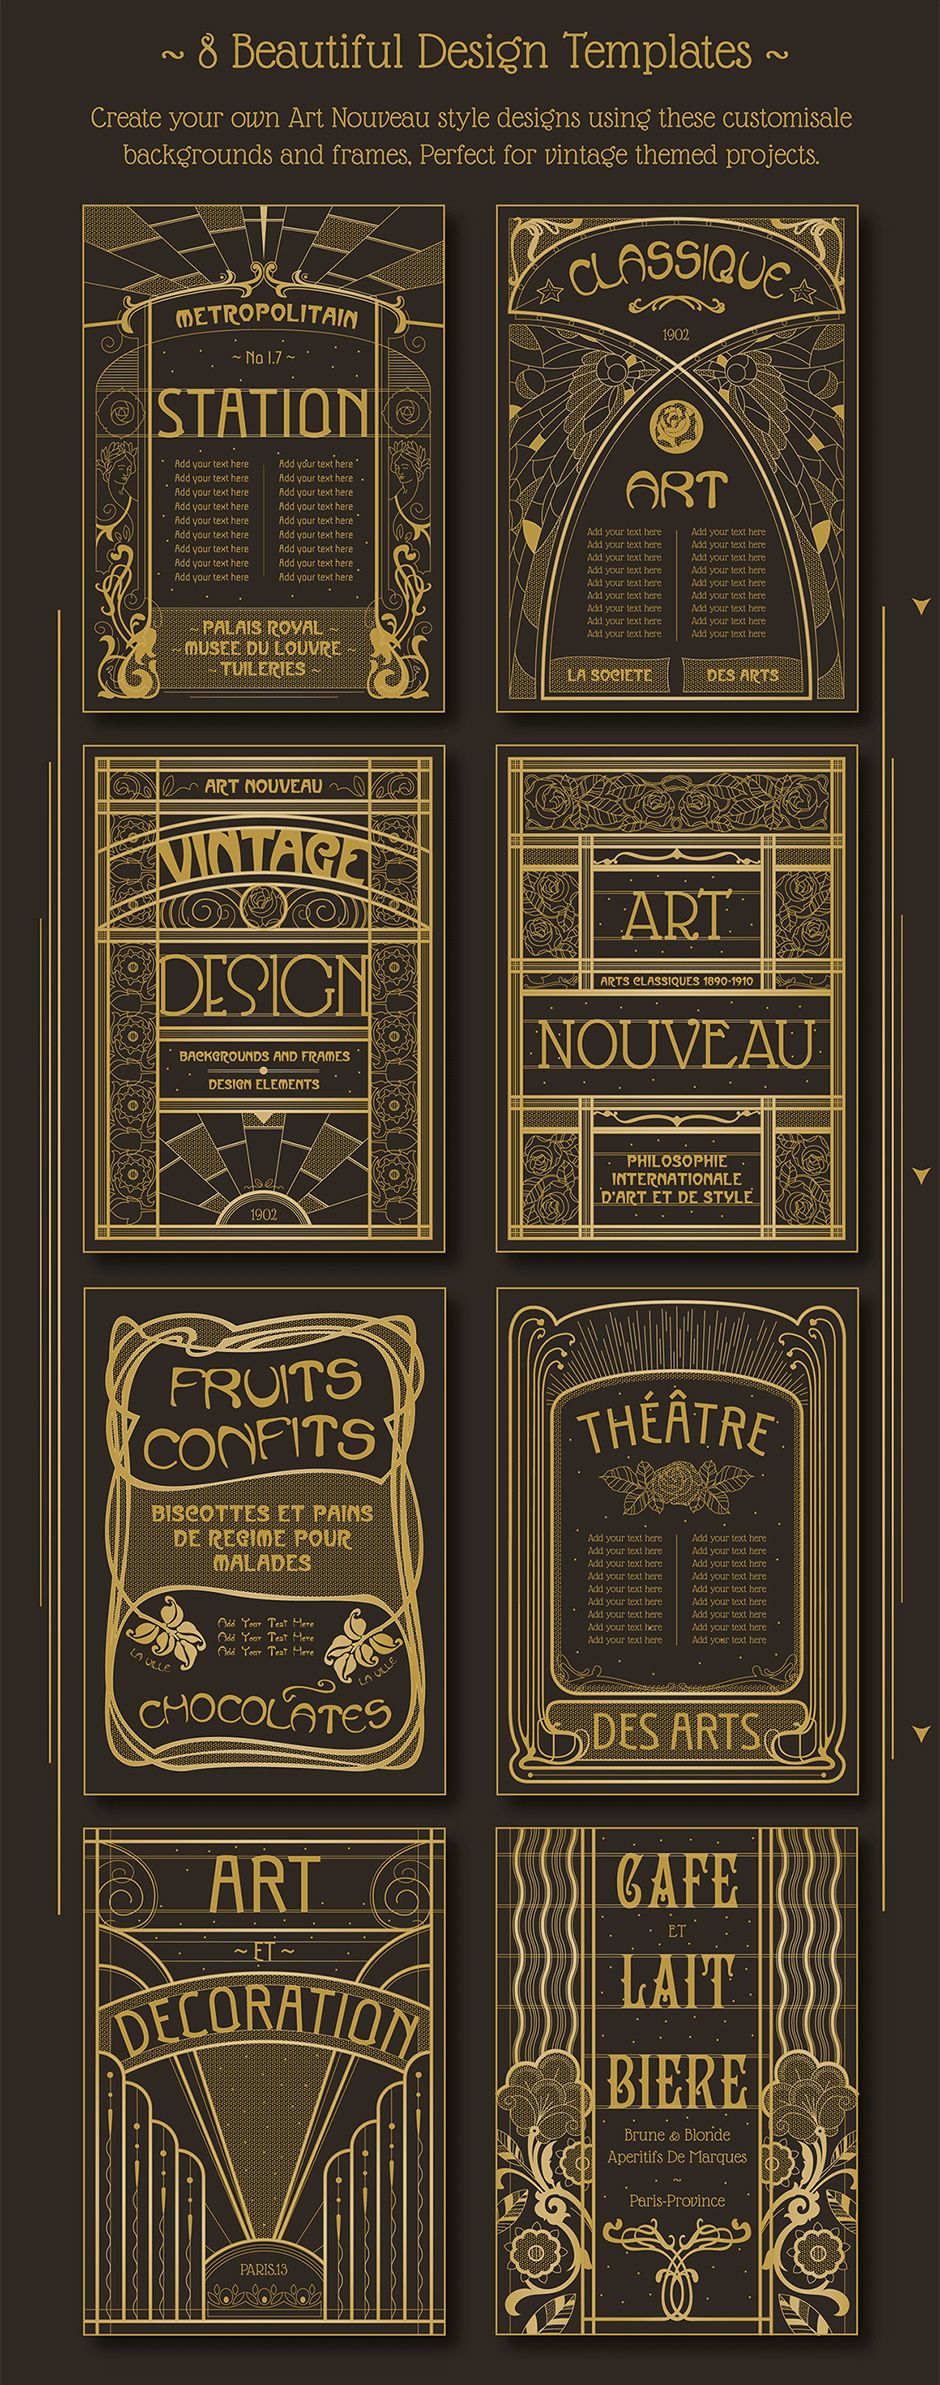 Art nouveau backgrounds how to and diy pinterest art nouveau backgrounds voltagebd Images